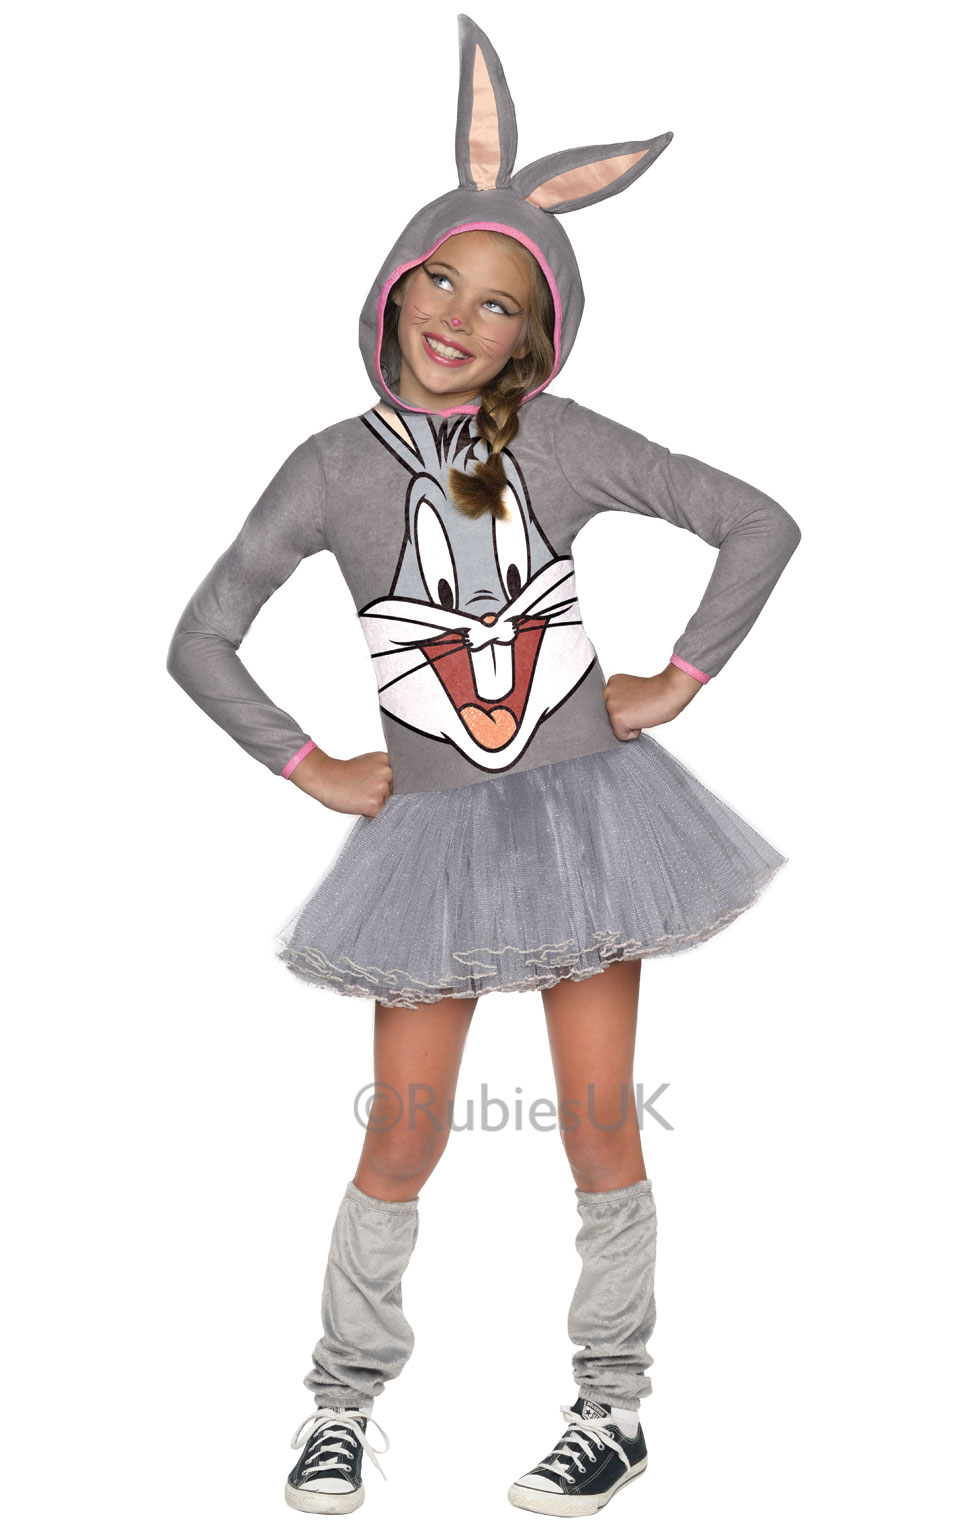 Cartoon Character Girls Fancy Dress Looney Tunes TV Kids Childs Costume Outfit